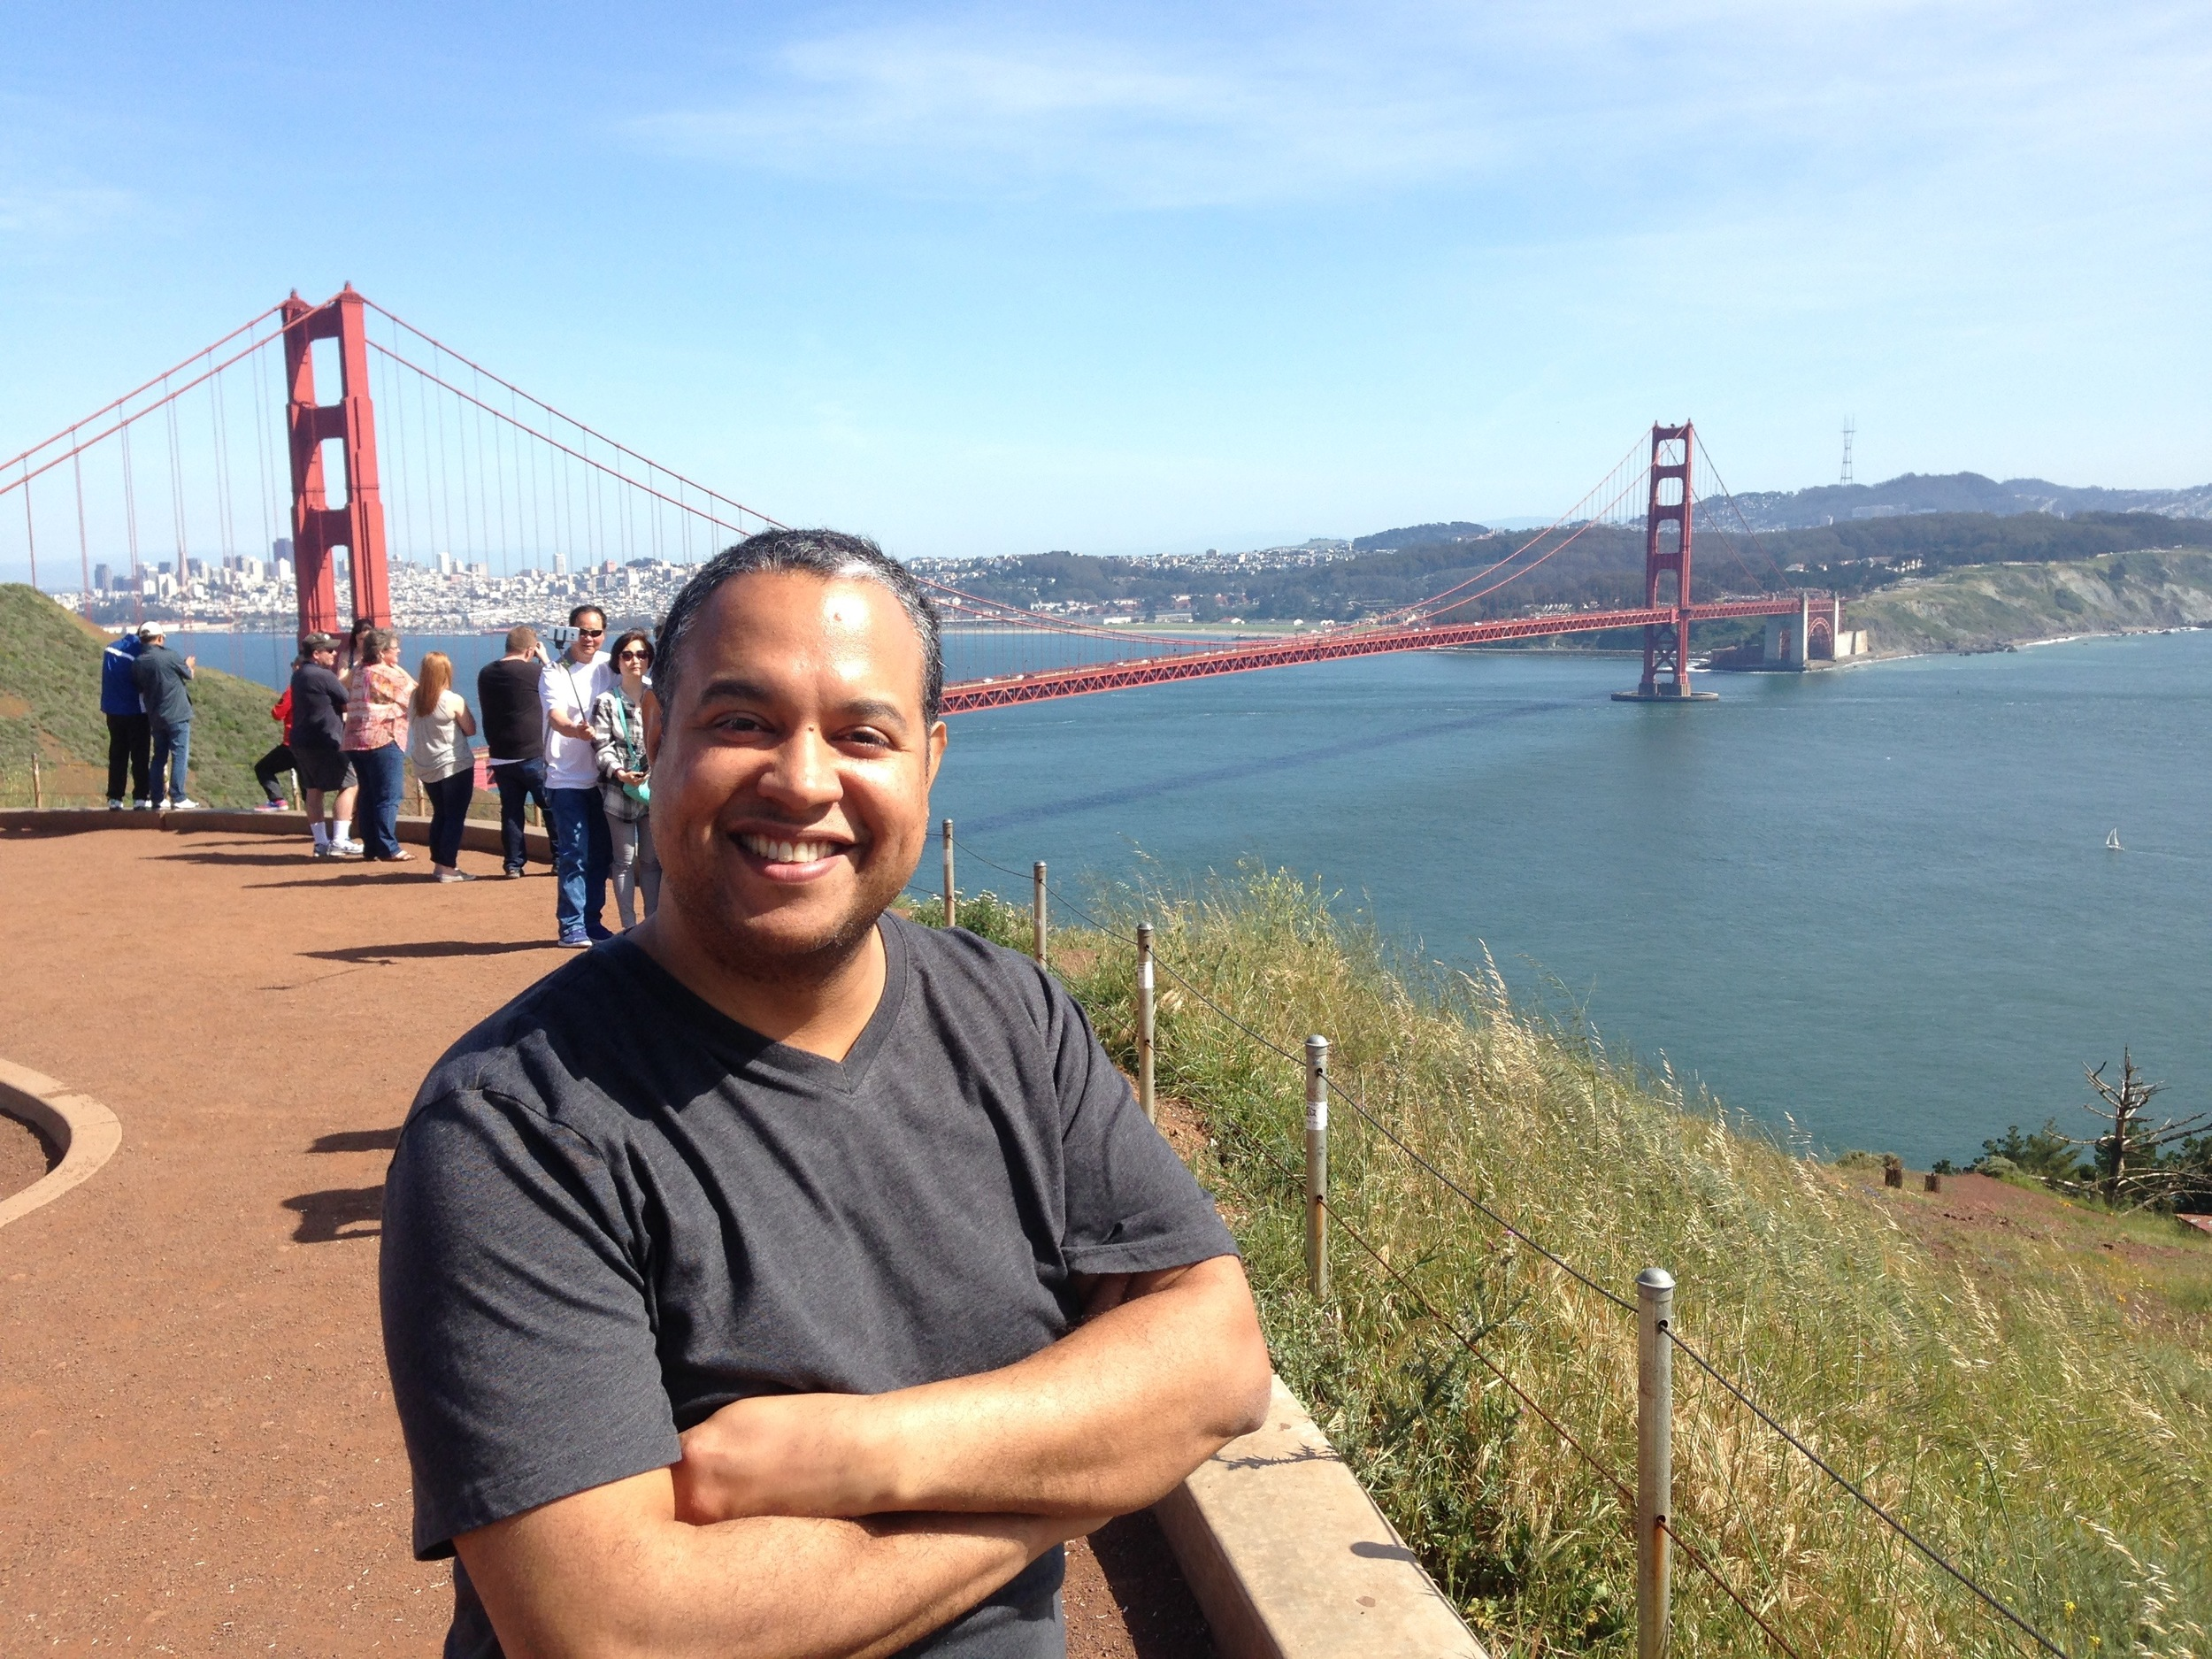 Ilmar enjoying the Bay Area as we chat about profiling him and his brother, Aldo, in Dos Hermanos / 2 Brothers.